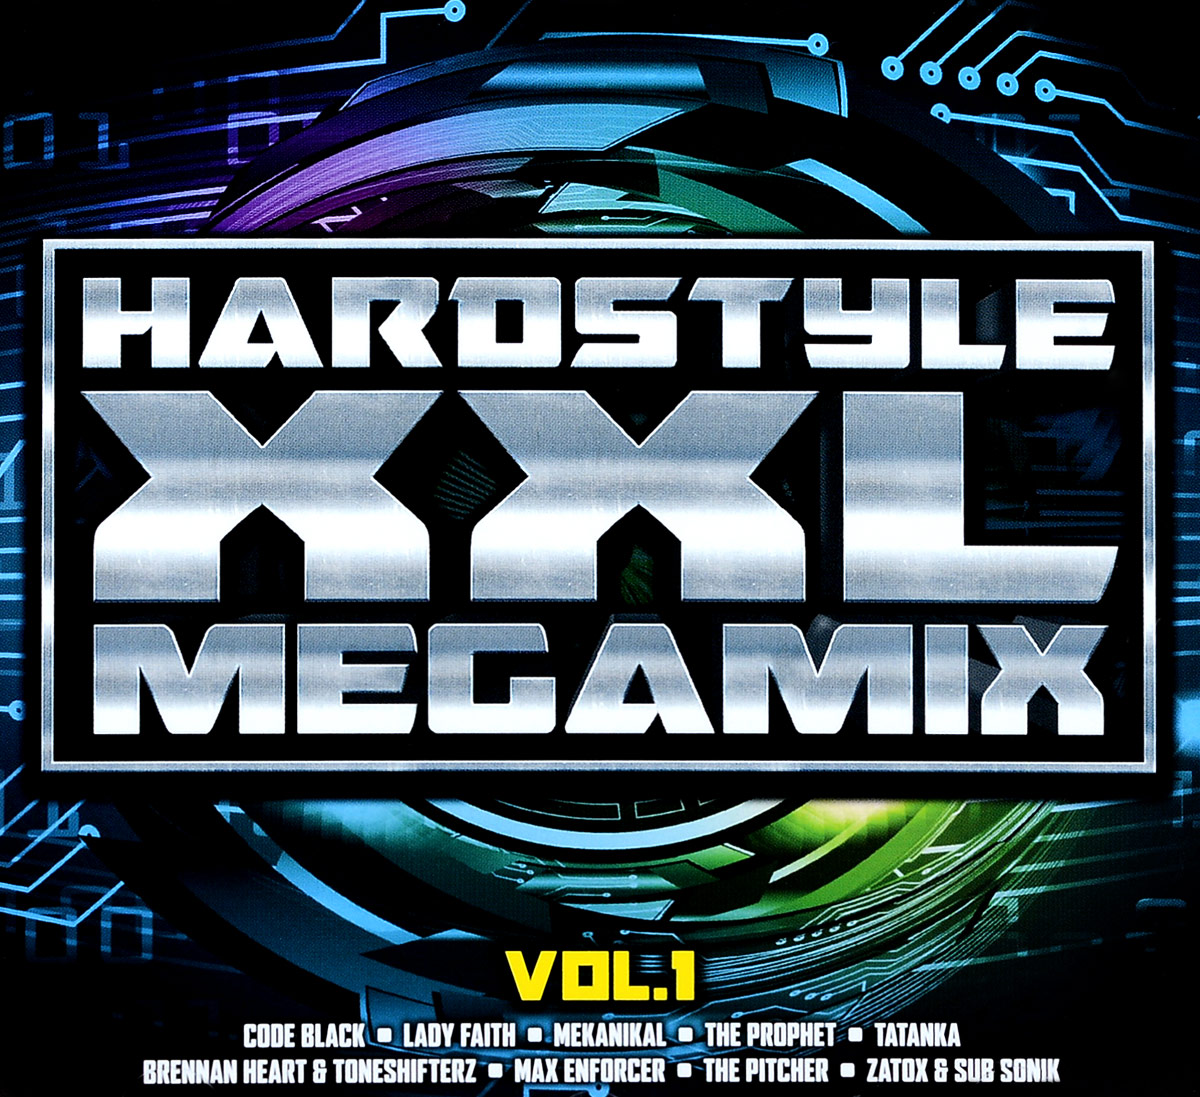 Tatanka,Toneshifterz,Adaro,Deetox,Ignition,Dailucia,Бреннан Харт,Девин Уайлд,Nightfall,Max Enforcer Hardstyle XXL Megamix. Vol. 1 (2 CD) би 2 – prague metropolitan symphonic orchestra vol 2 cd